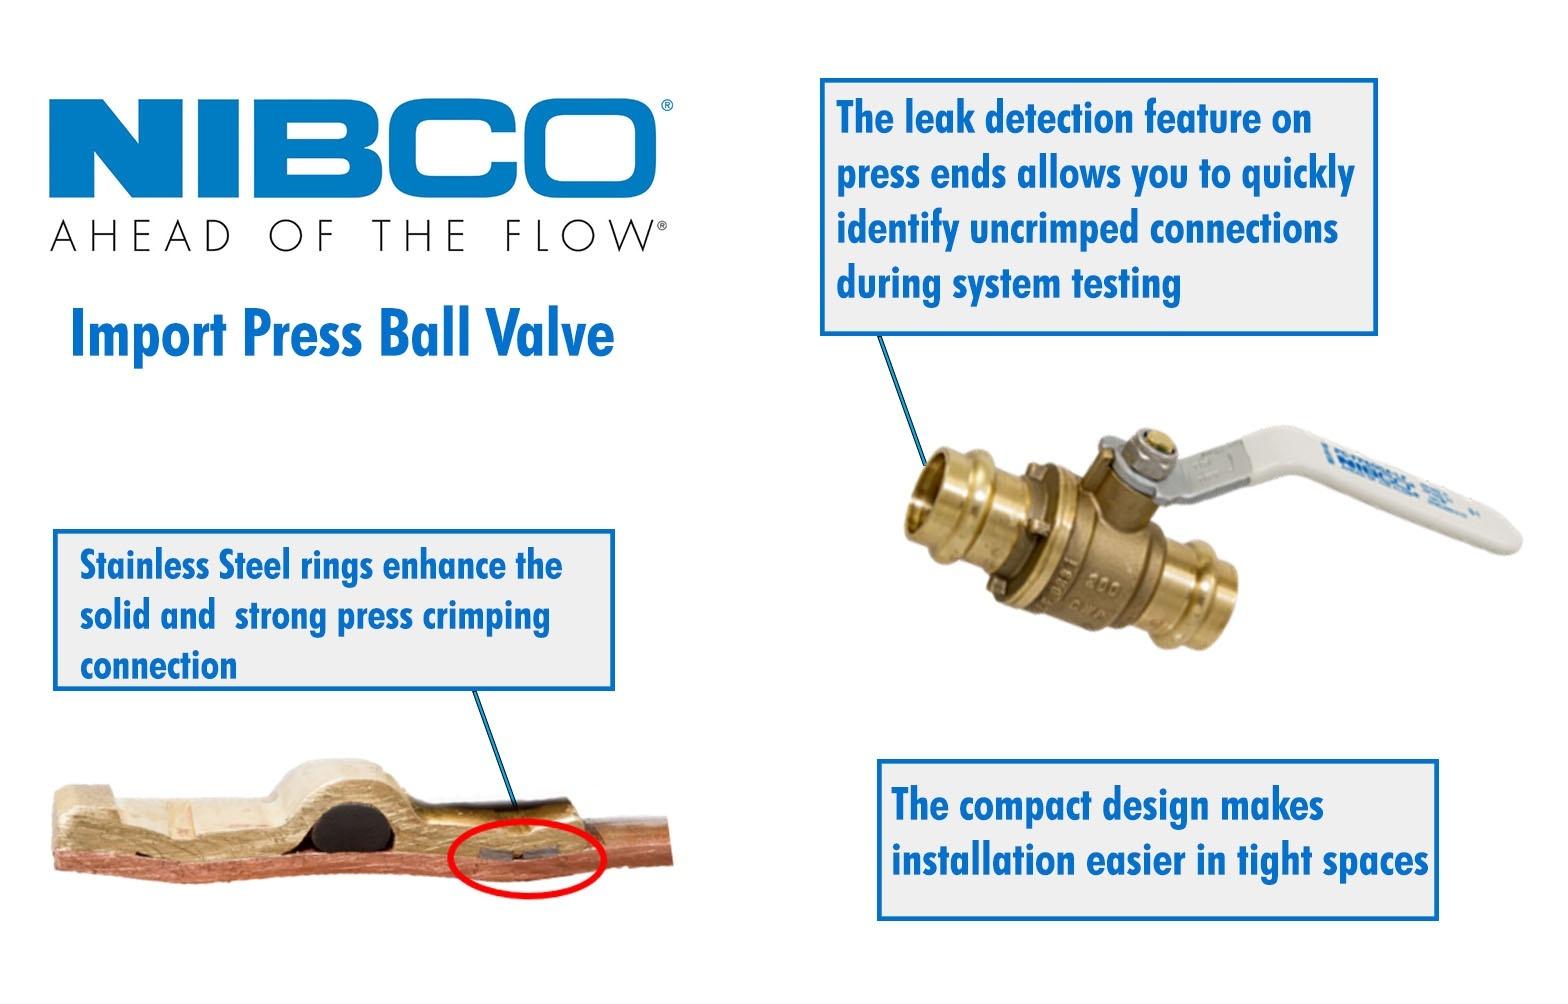 Import Press Ball Valve